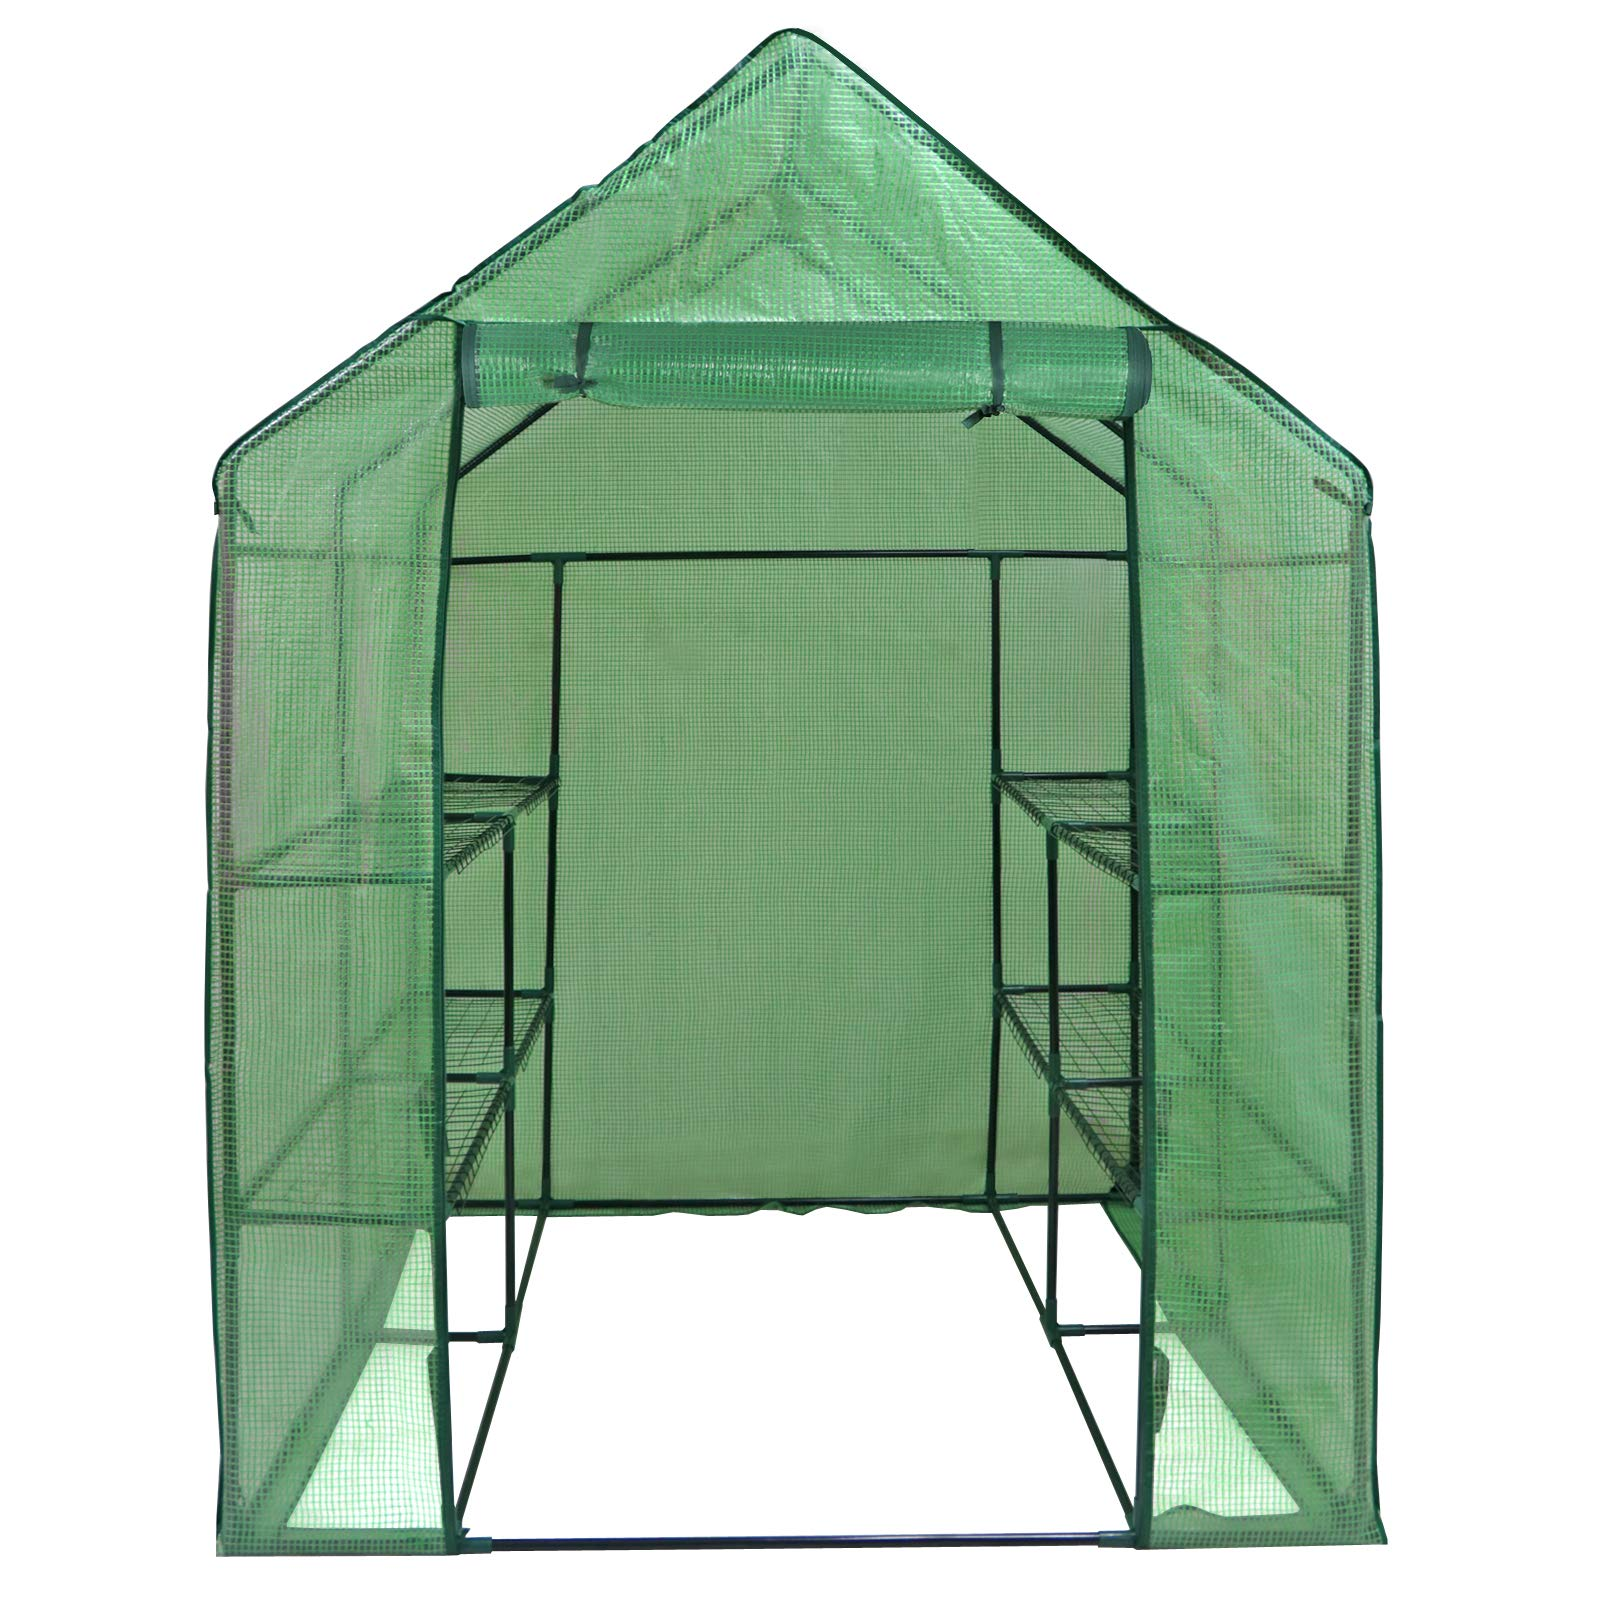 Mini Walk-in Greenhouse 3 Tier 12 Shelves with PE Cover and Roll-Up Zipper Door, Waterproof Cloche Portable Greenhouse Tent-57'' L x 57'' W x 77'' H, Grow Seeds & Seedlings, Tend Potted Plants